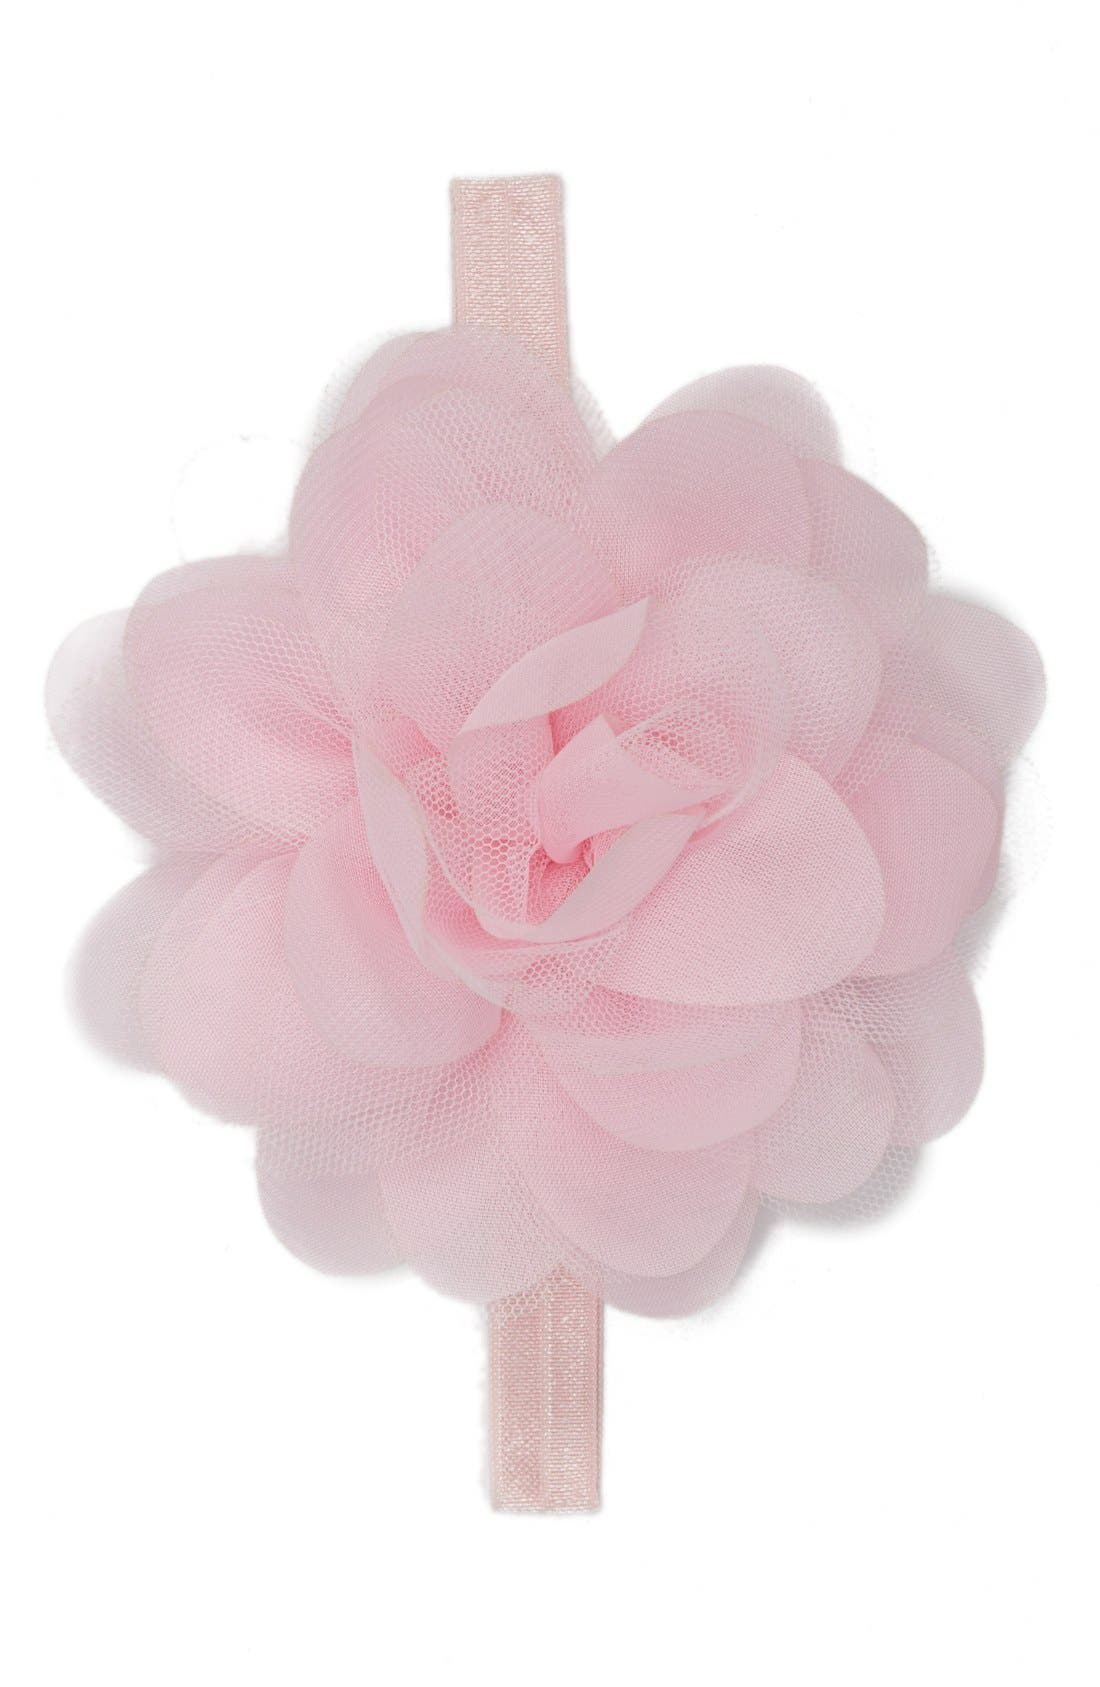 Chiffon & Tulle Flower Head Wrap,                             Main thumbnail 1, color,                             BLUSH